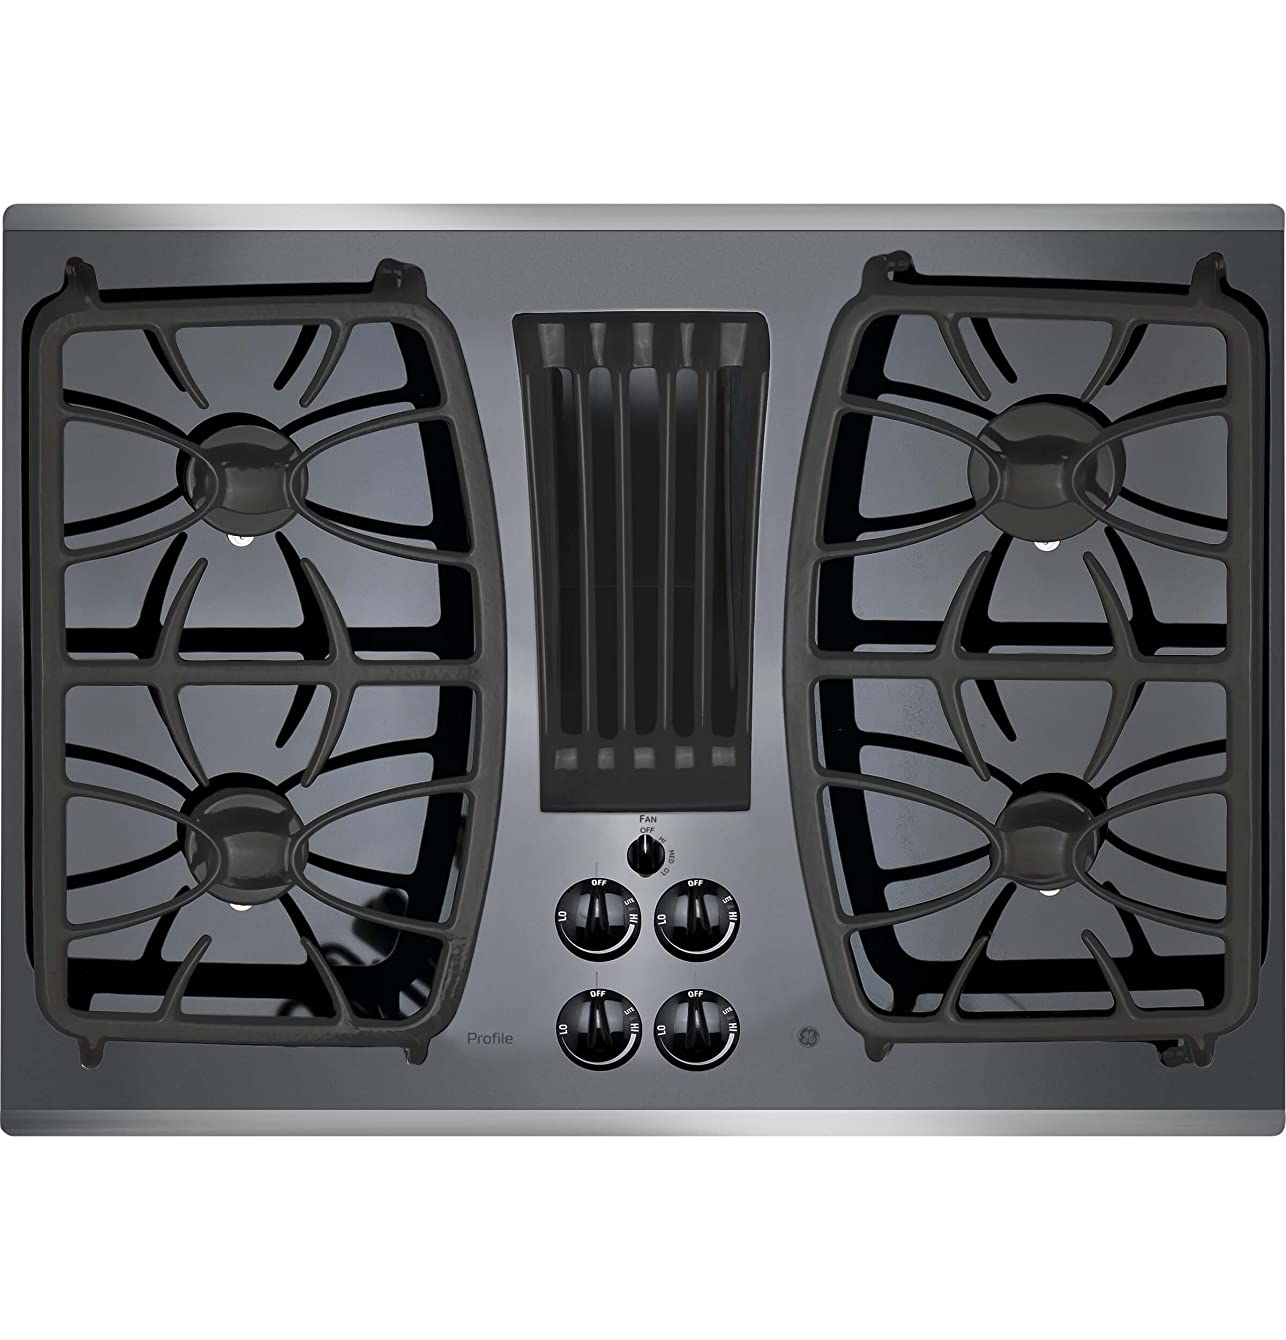 GE PGP9830SJSS cooktop